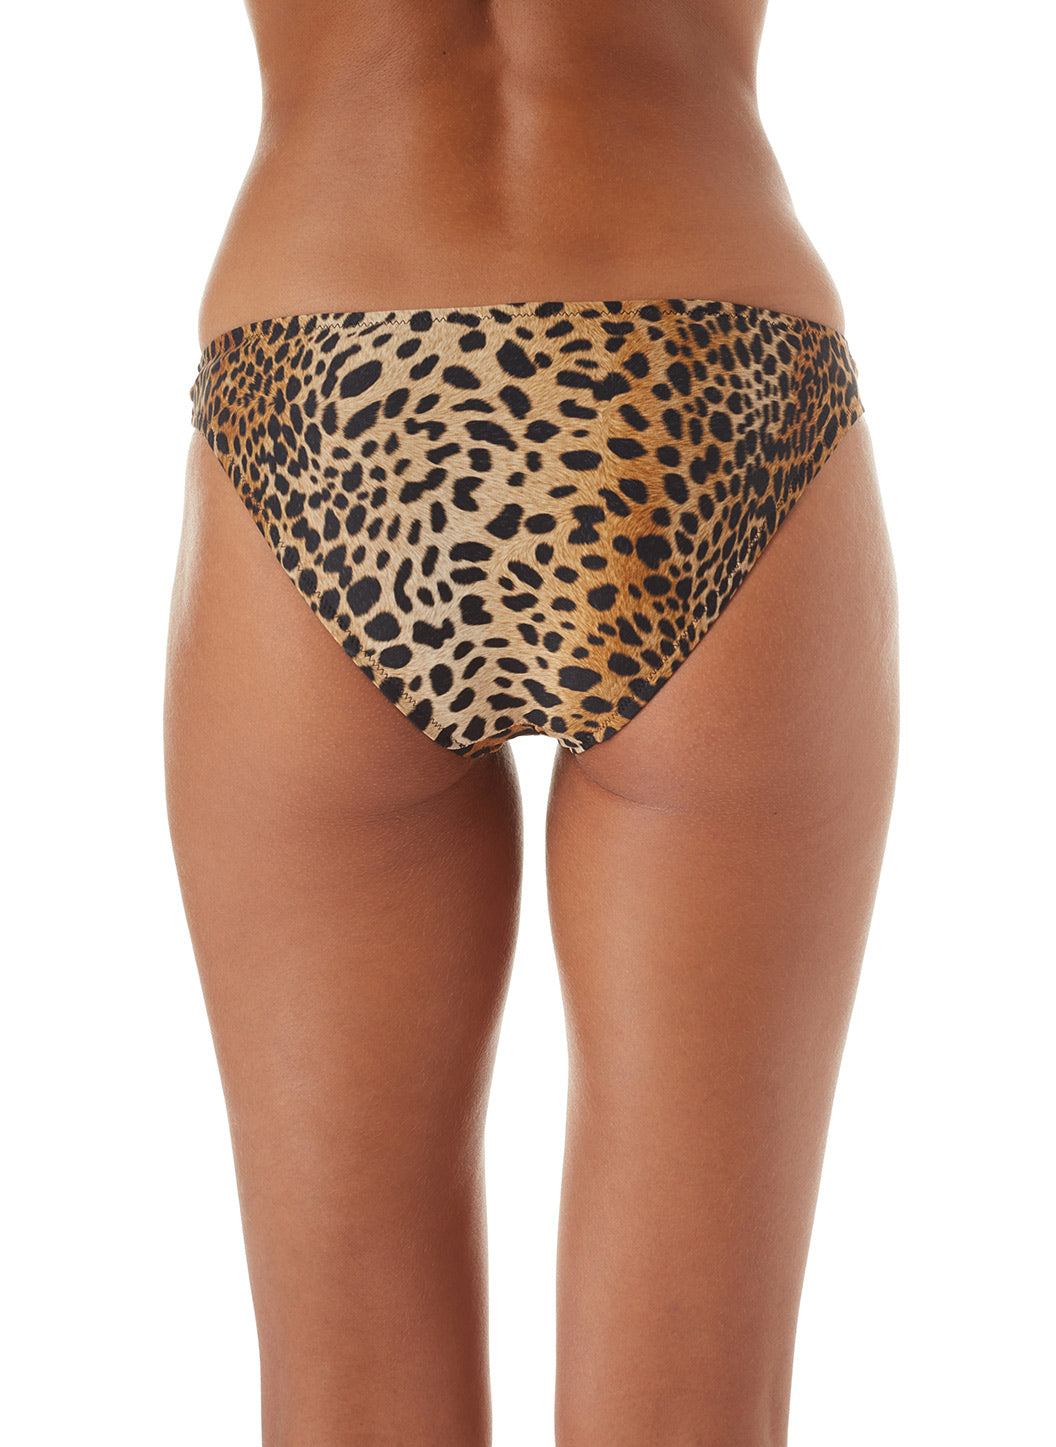 Exclusive Martinique Cheetah Bandeau Padded Twist Bikini